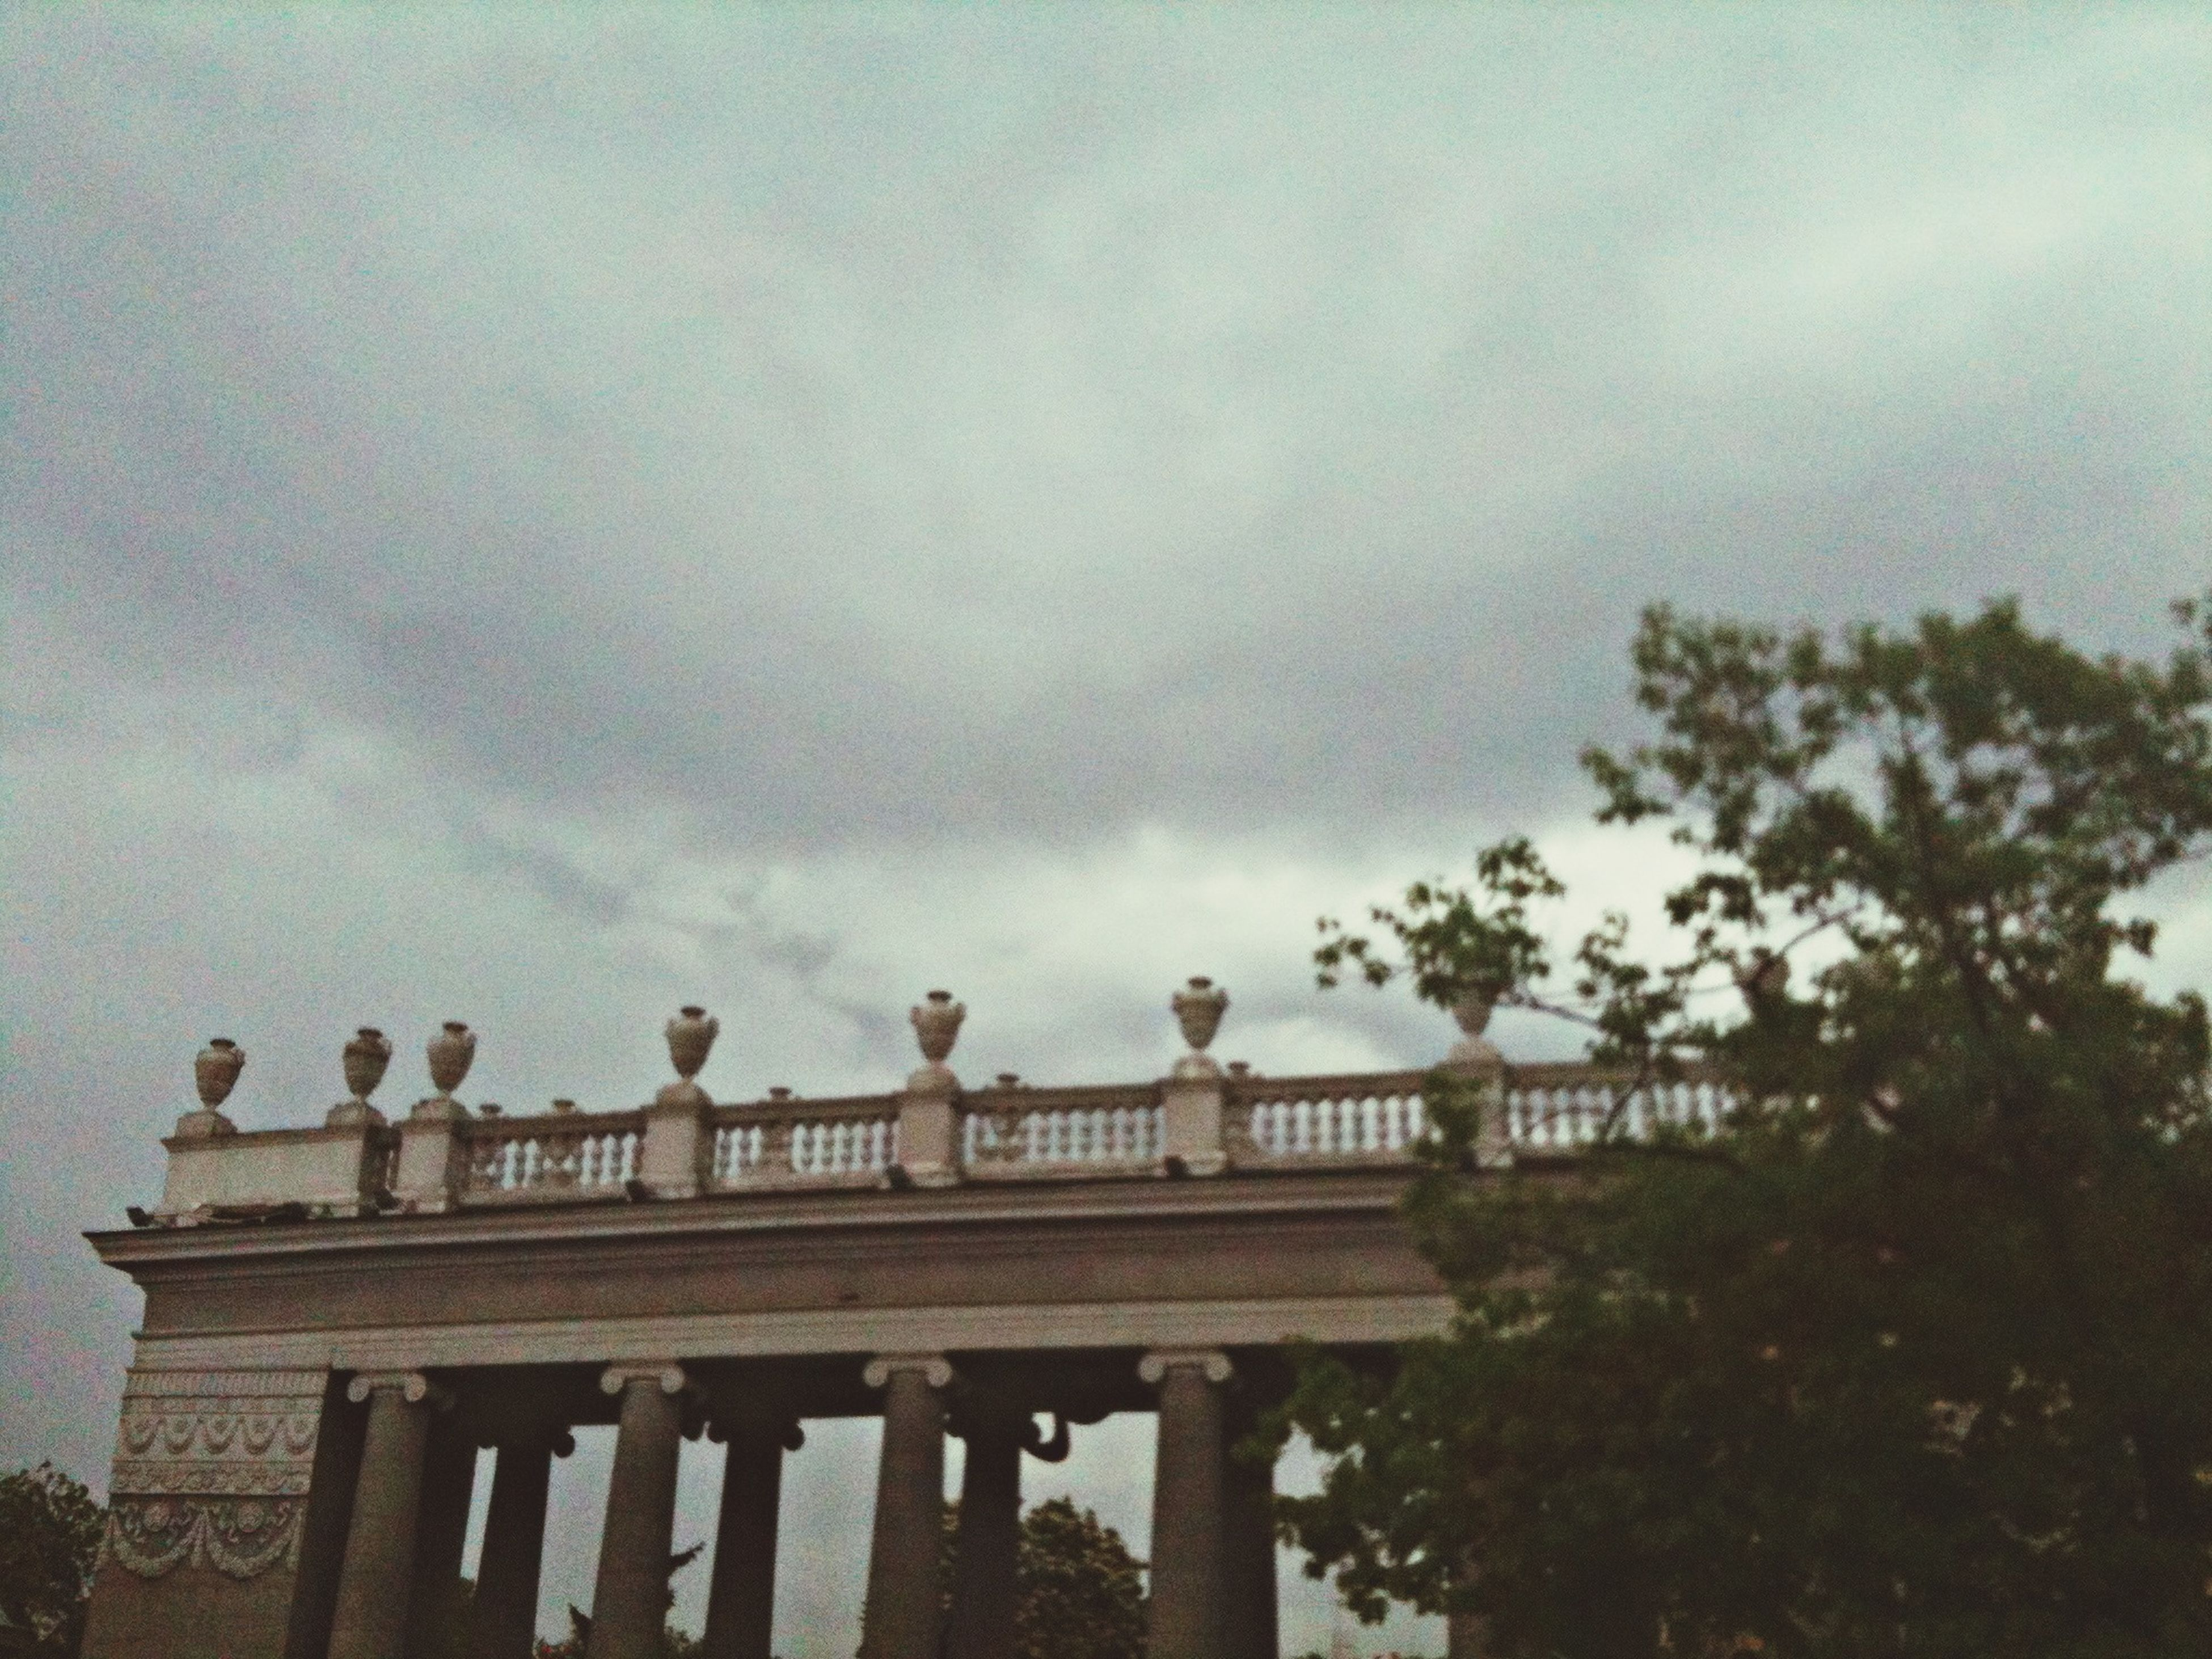 architecture, sky, low angle view, built structure, cloud - sky, cloudy, architectural column, building exterior, tree, cloud, overcast, outdoors, column, statue, day, history, art and craft, sculpture, no people, art